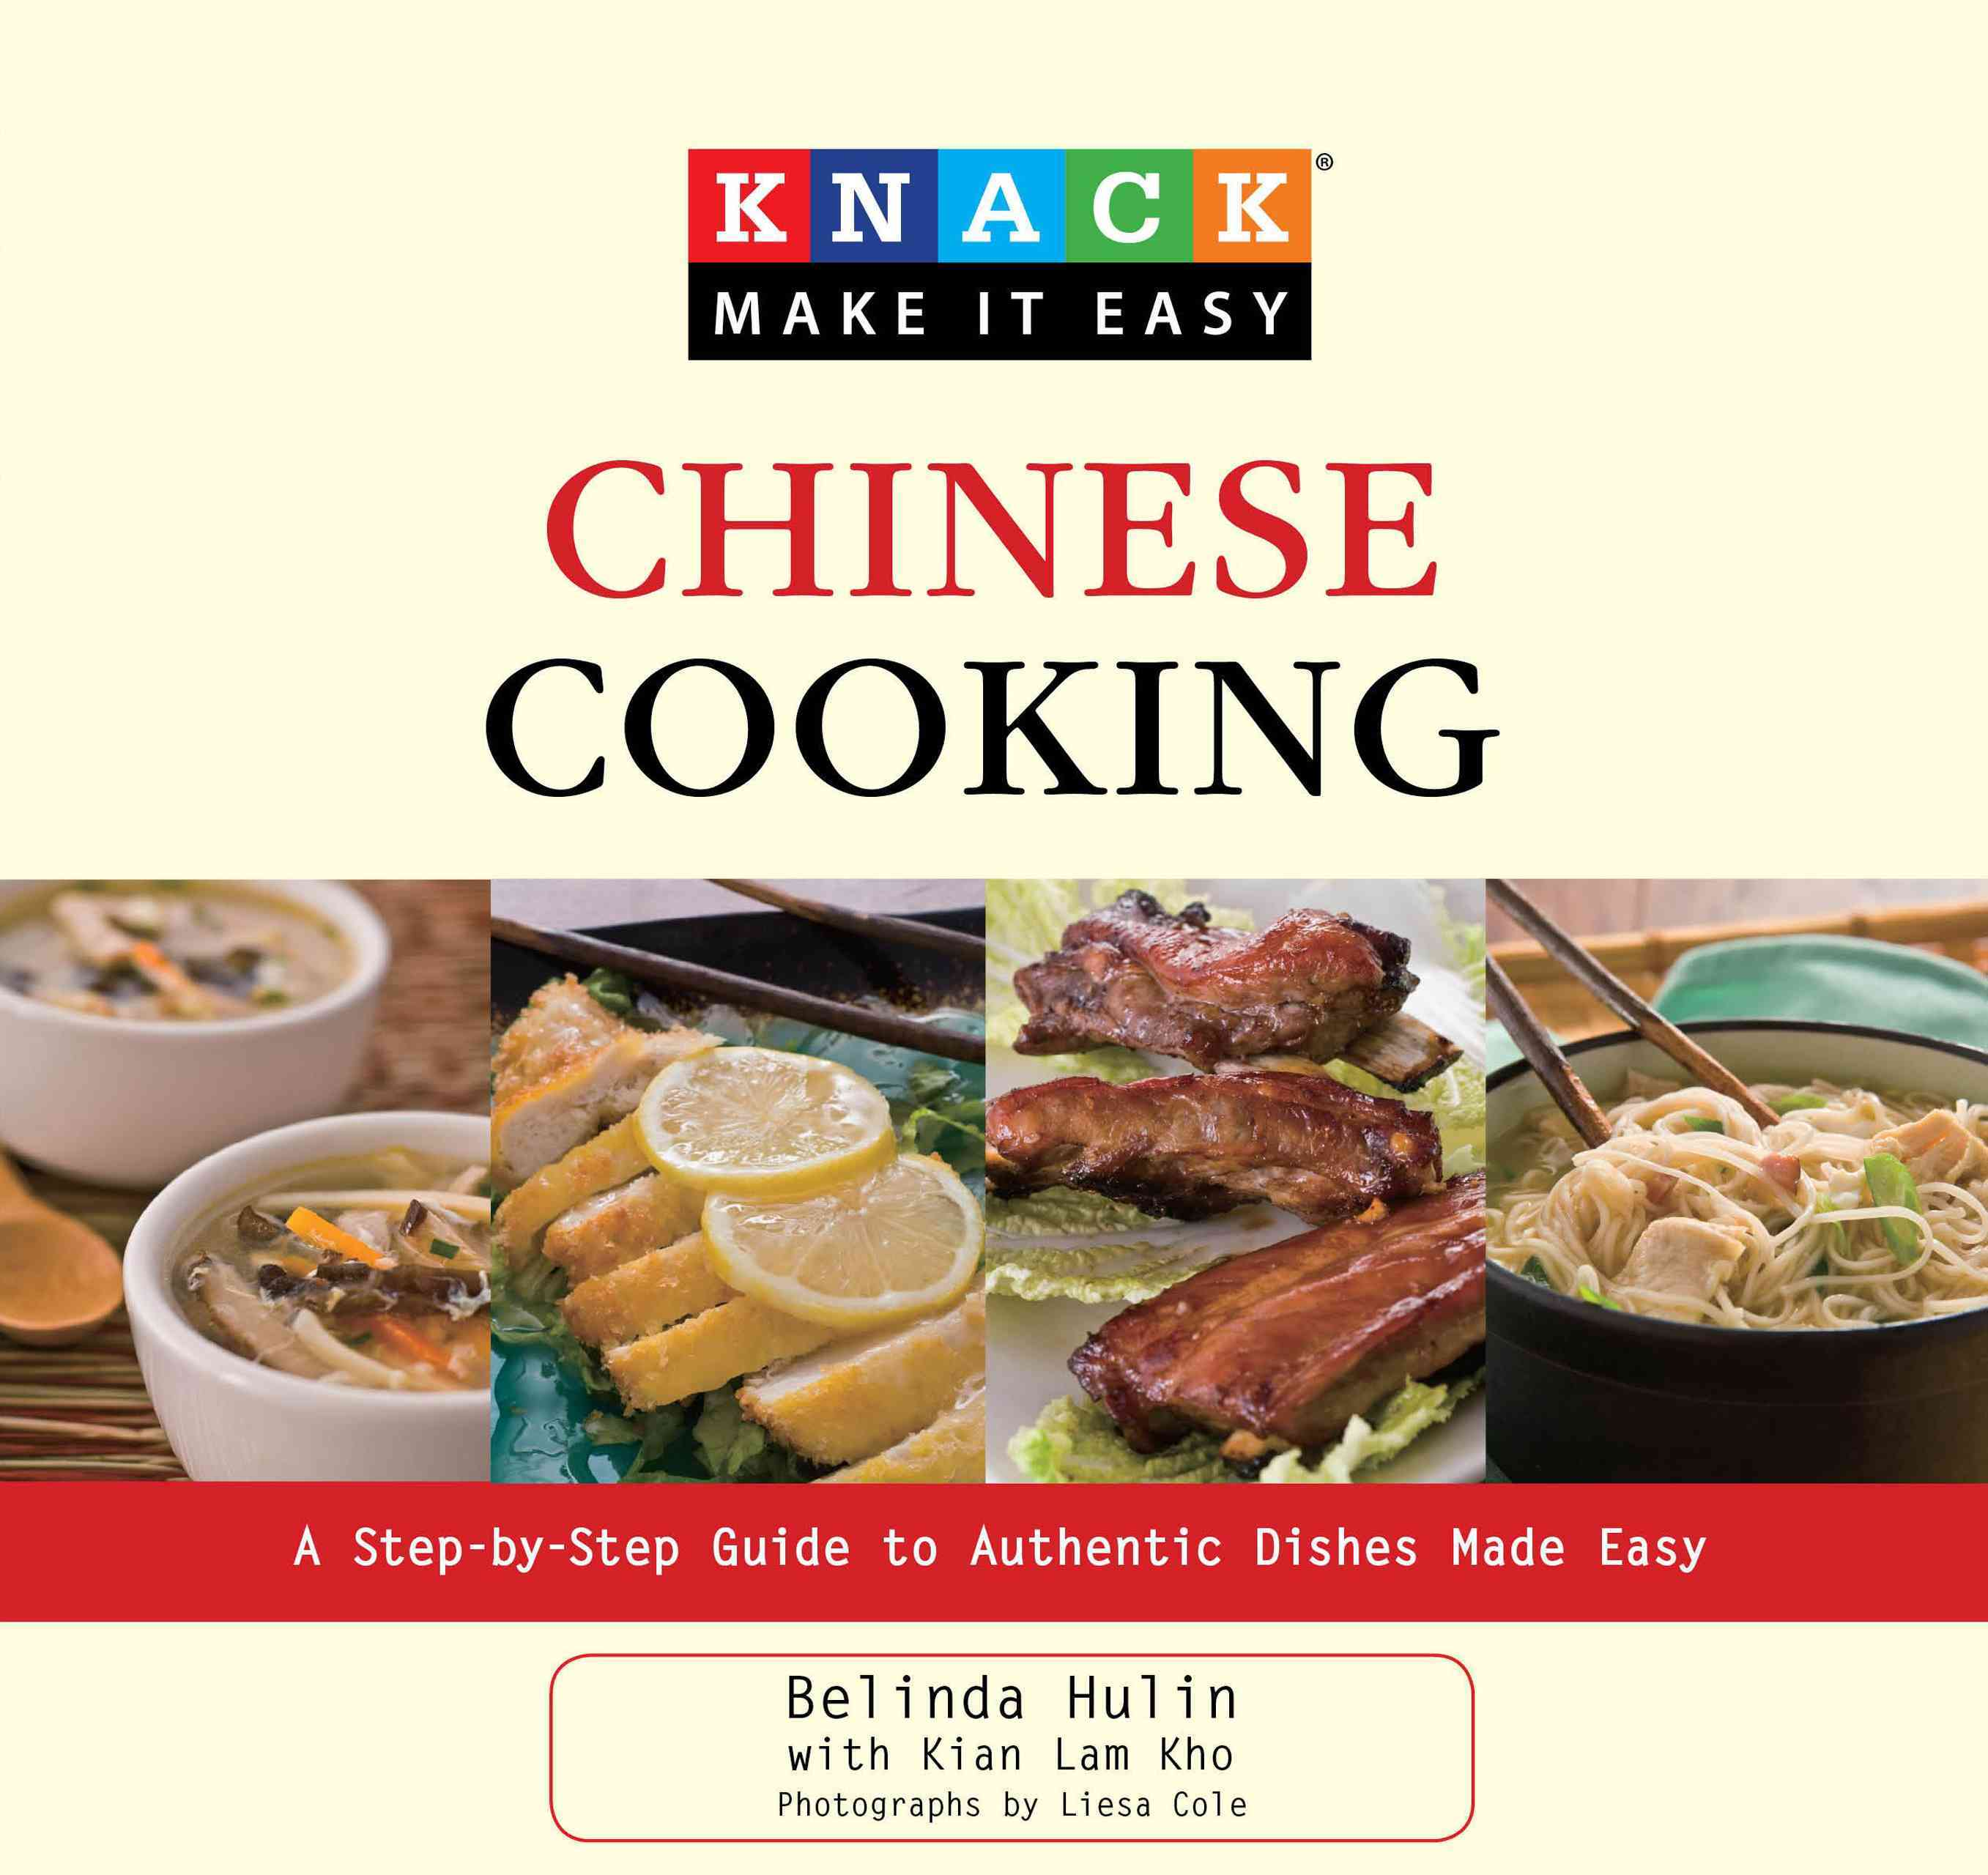 Knack Chinese Cooking: A Step-by-Step Guide to Authentic Dishes Made Easy (Paperback)